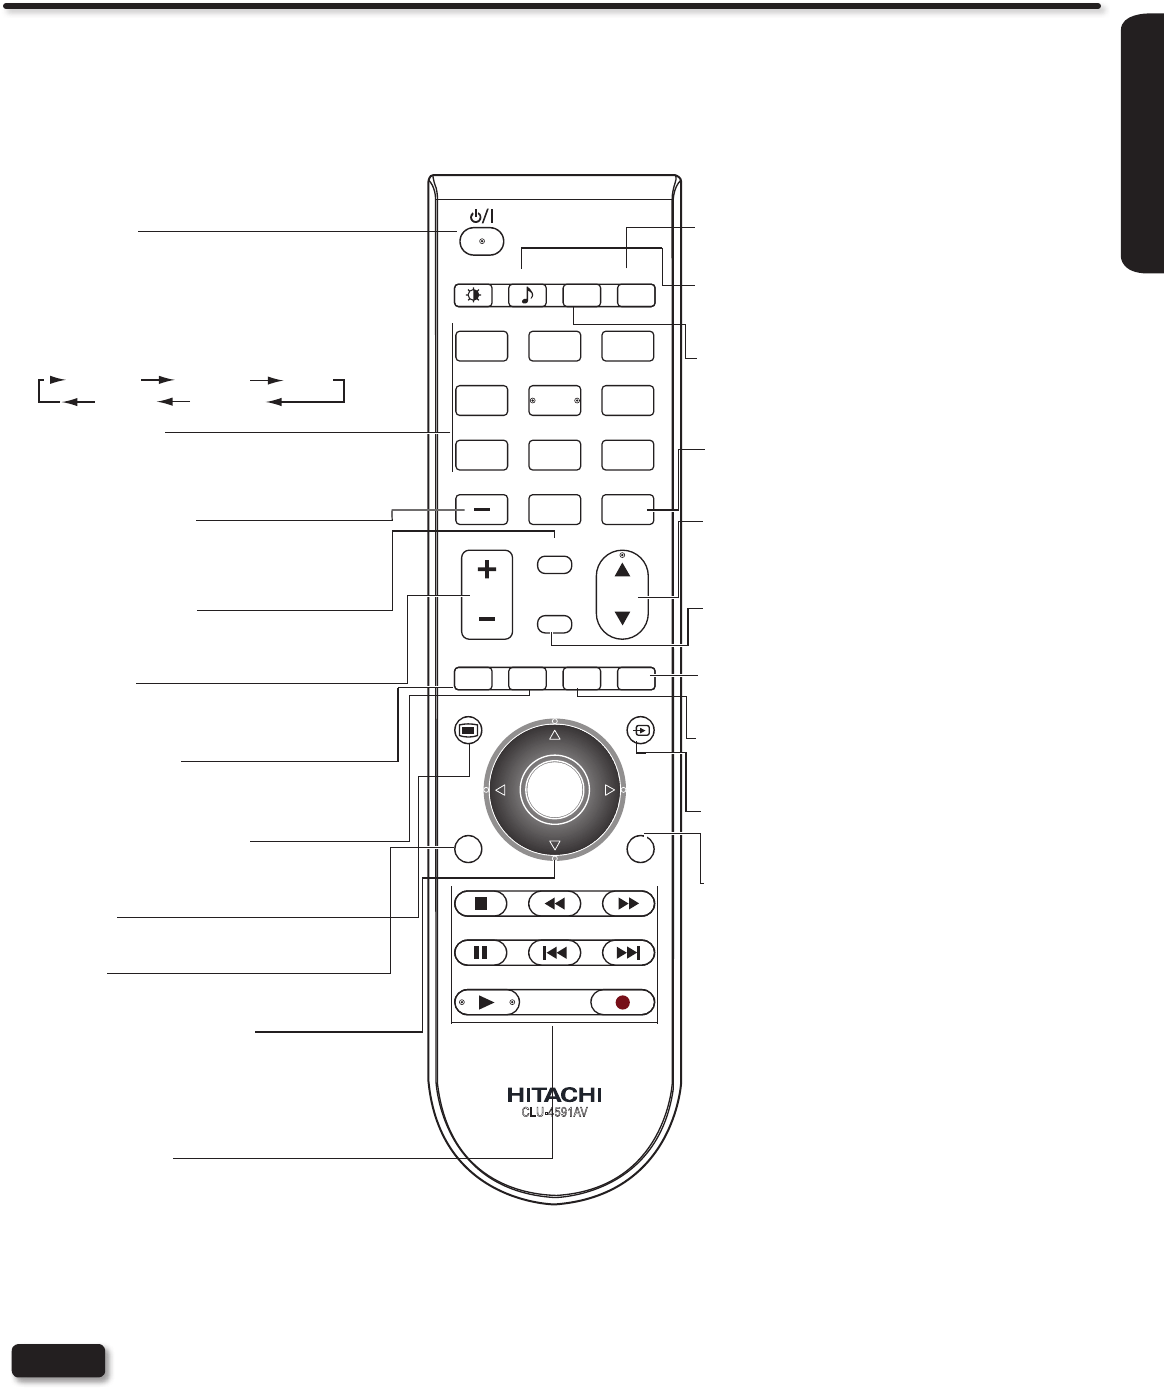 Page 11 of Hitachi Flat Panel Television L32A404 User